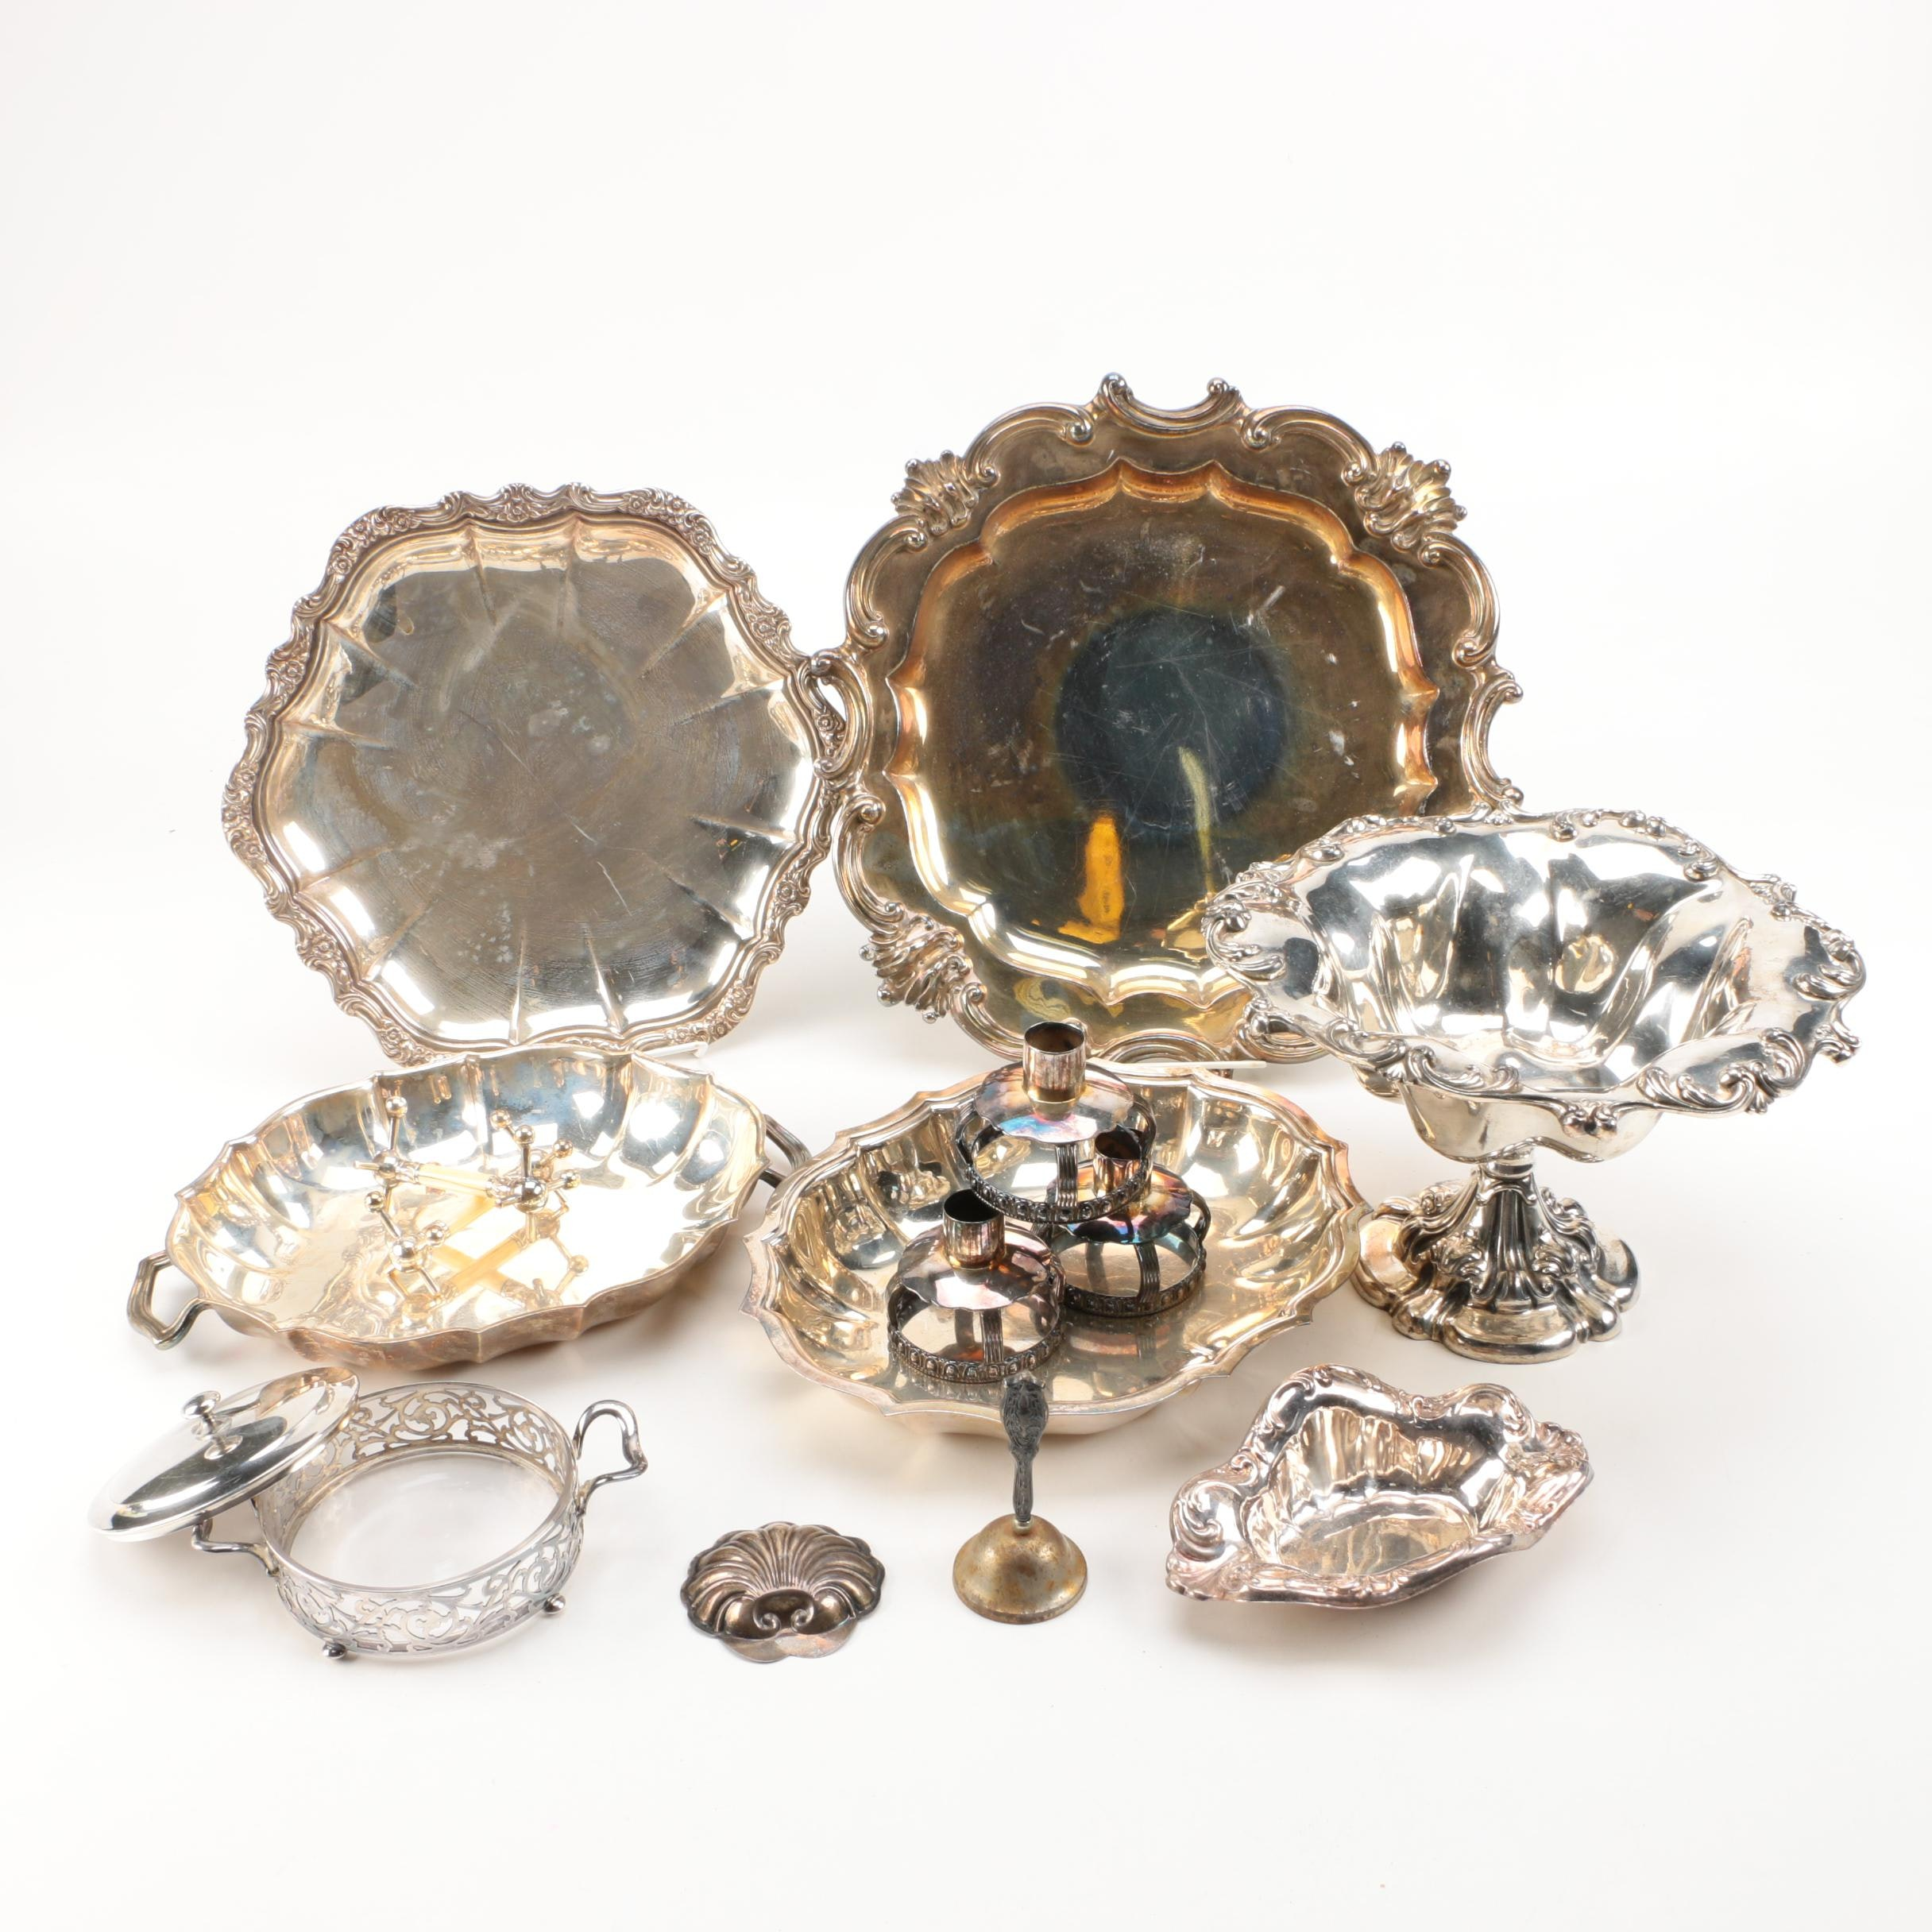 Silver Plate Platters and Serveware Including International Silver Co.